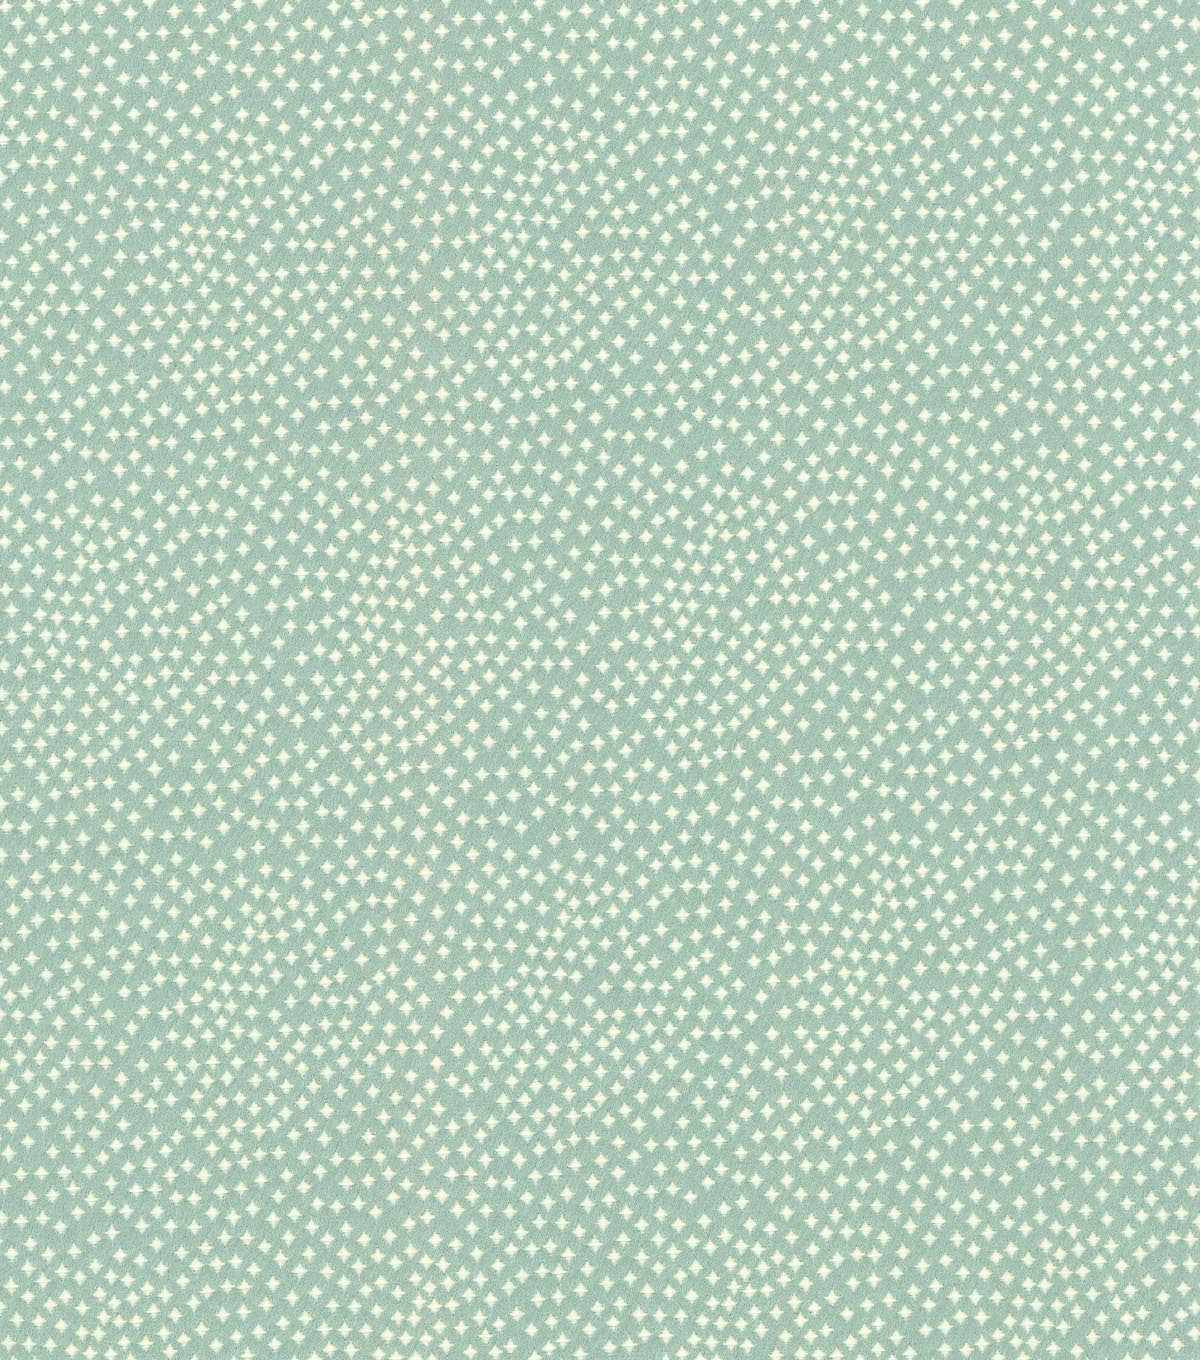 Home Decor 8\u0022x8\u0022 Swatch Fabric-Tracy Porter Following Stars Celestial